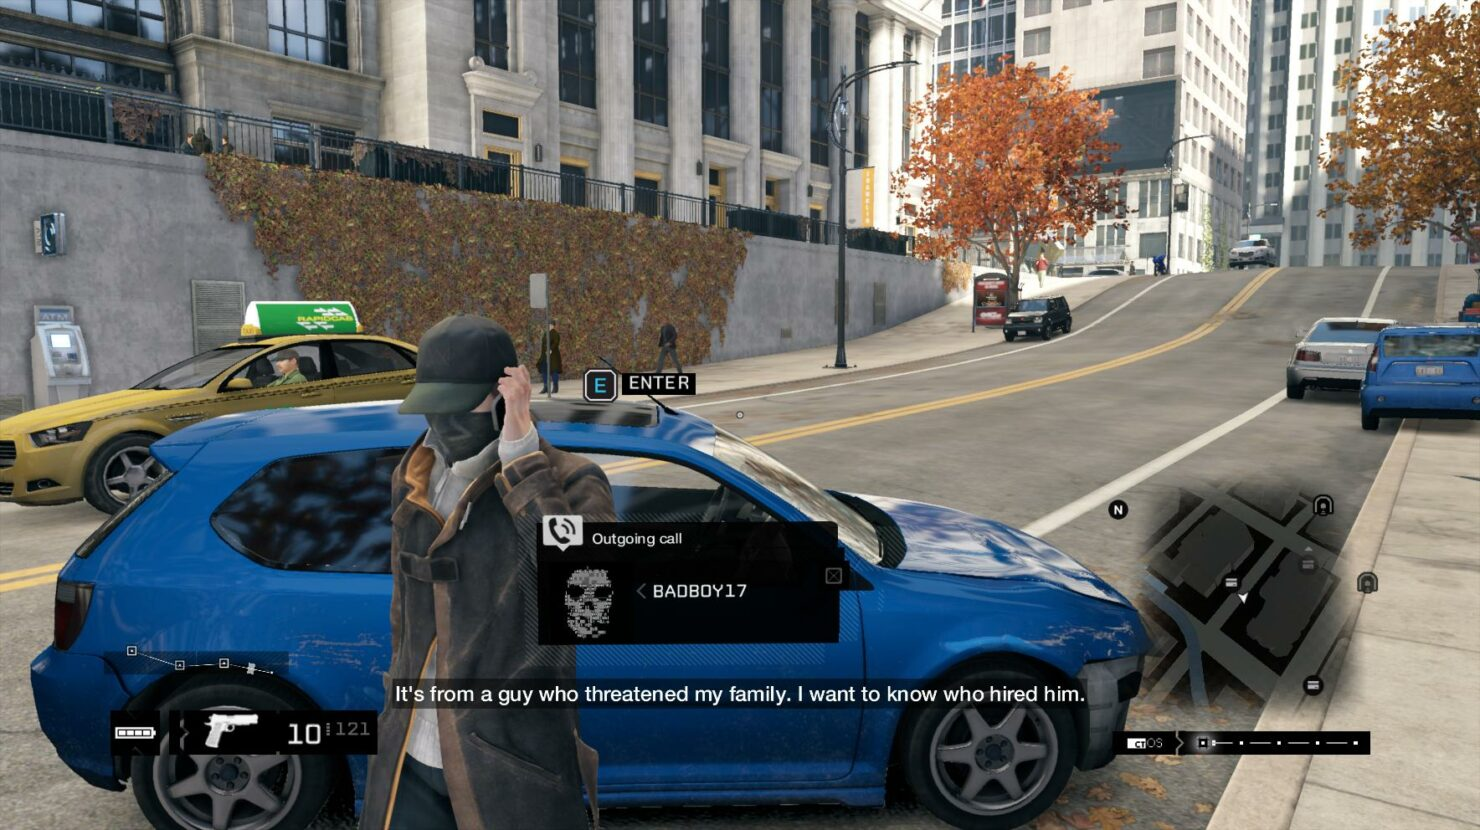 watch_dogs-2014-05-24-12-34-01-25